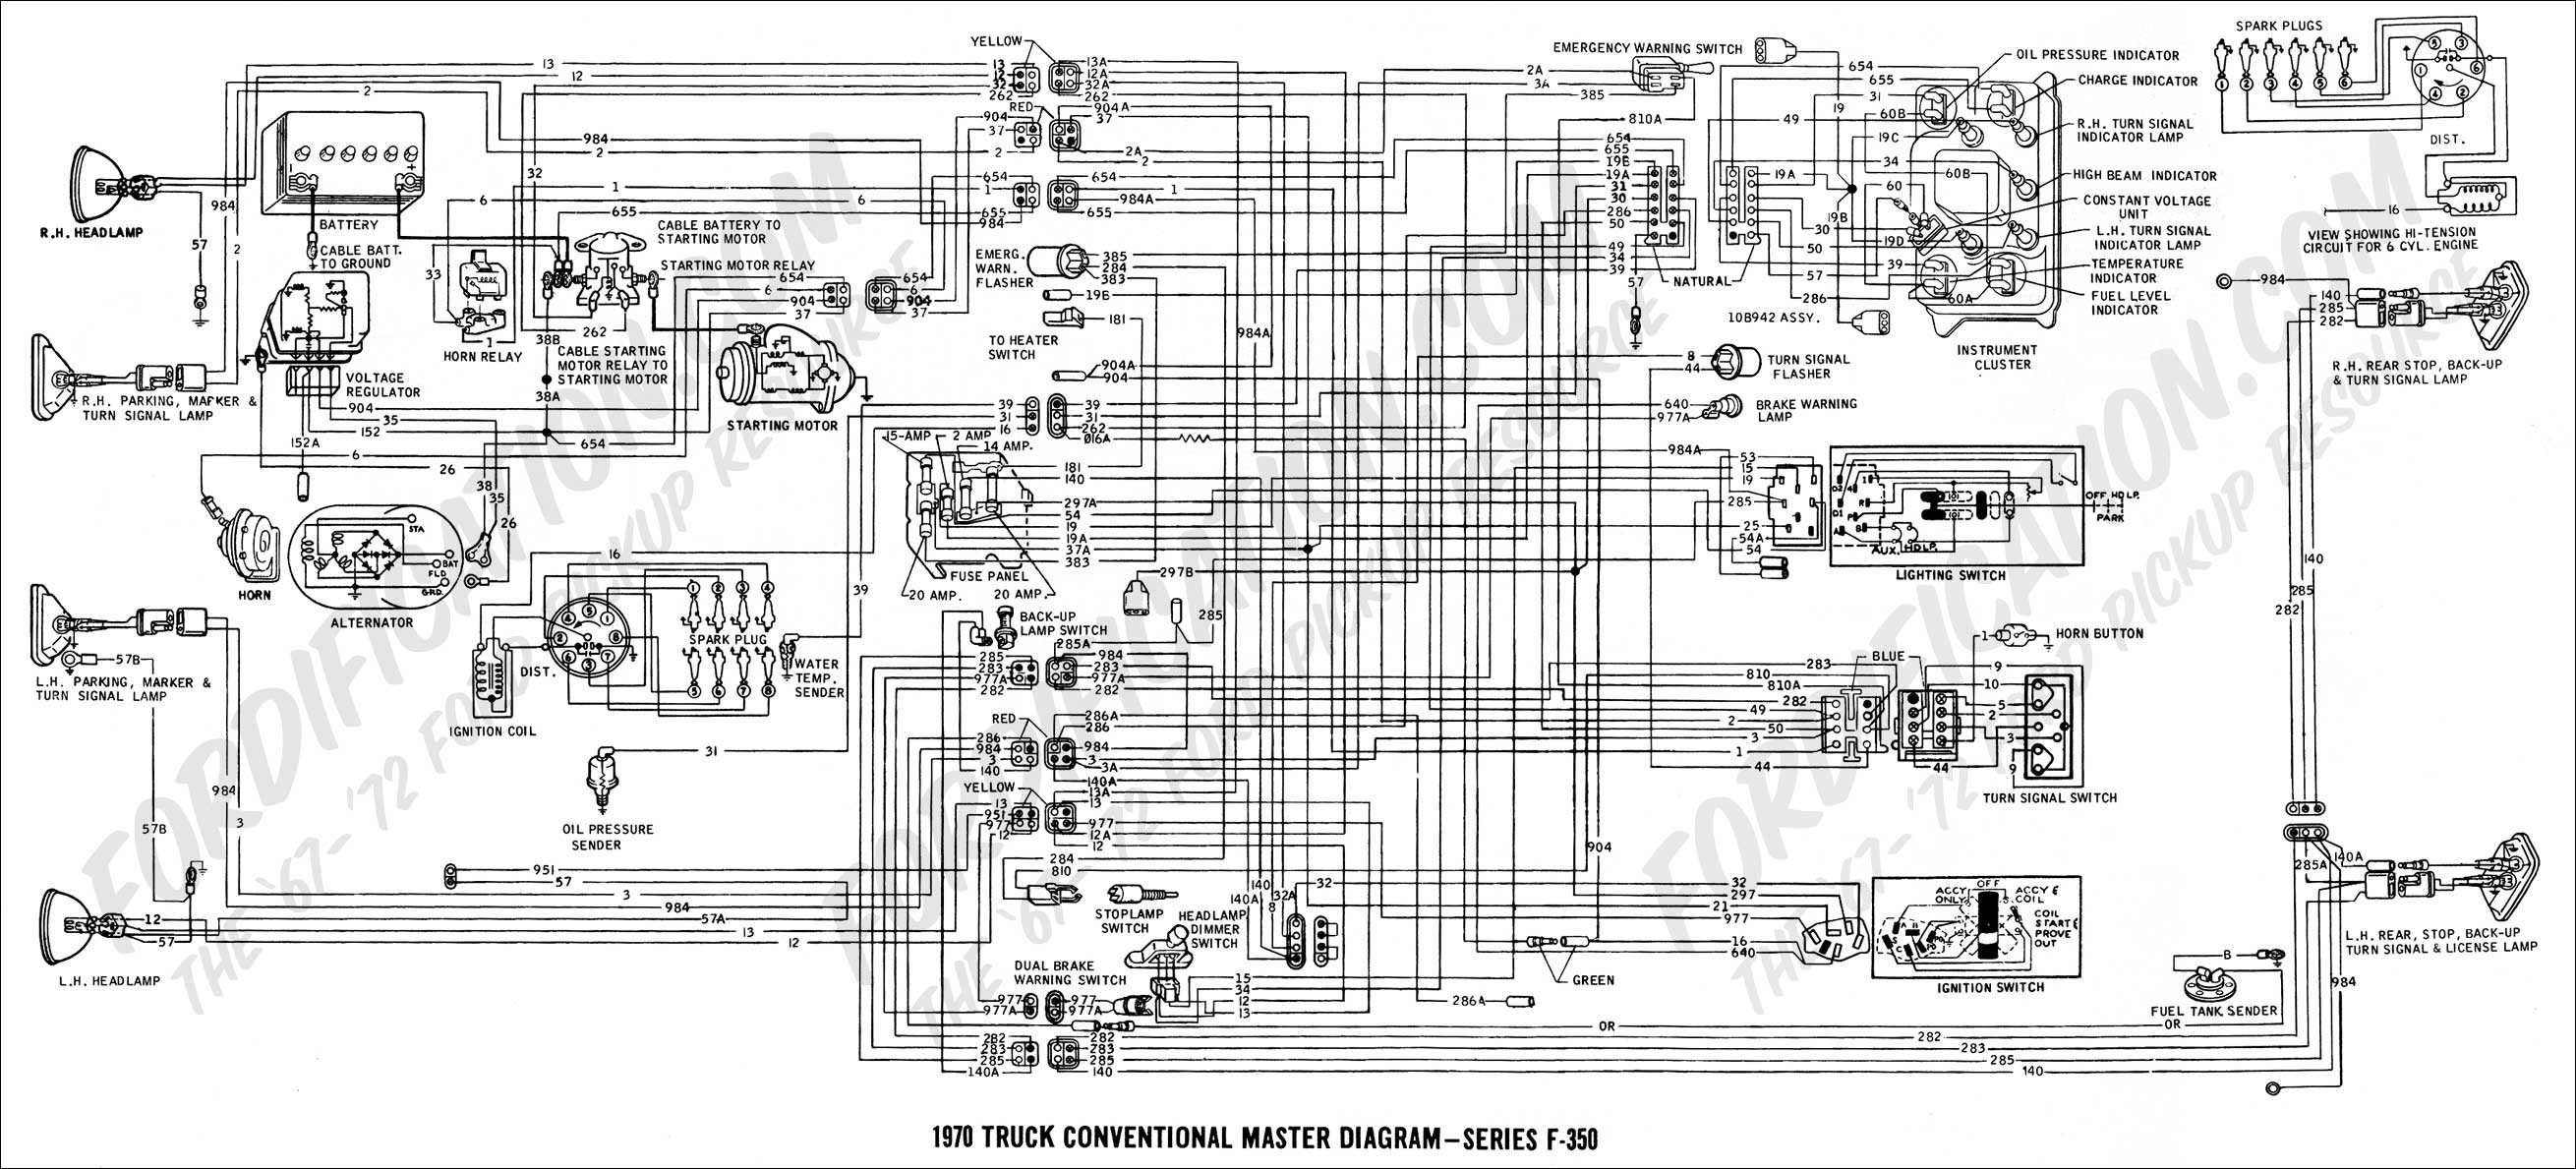 2004 Passat Engine Diagram 2006 ford Ranger Wiring Diagram 3 Wiring Diagram Of 2004 Passat Engine Diagram